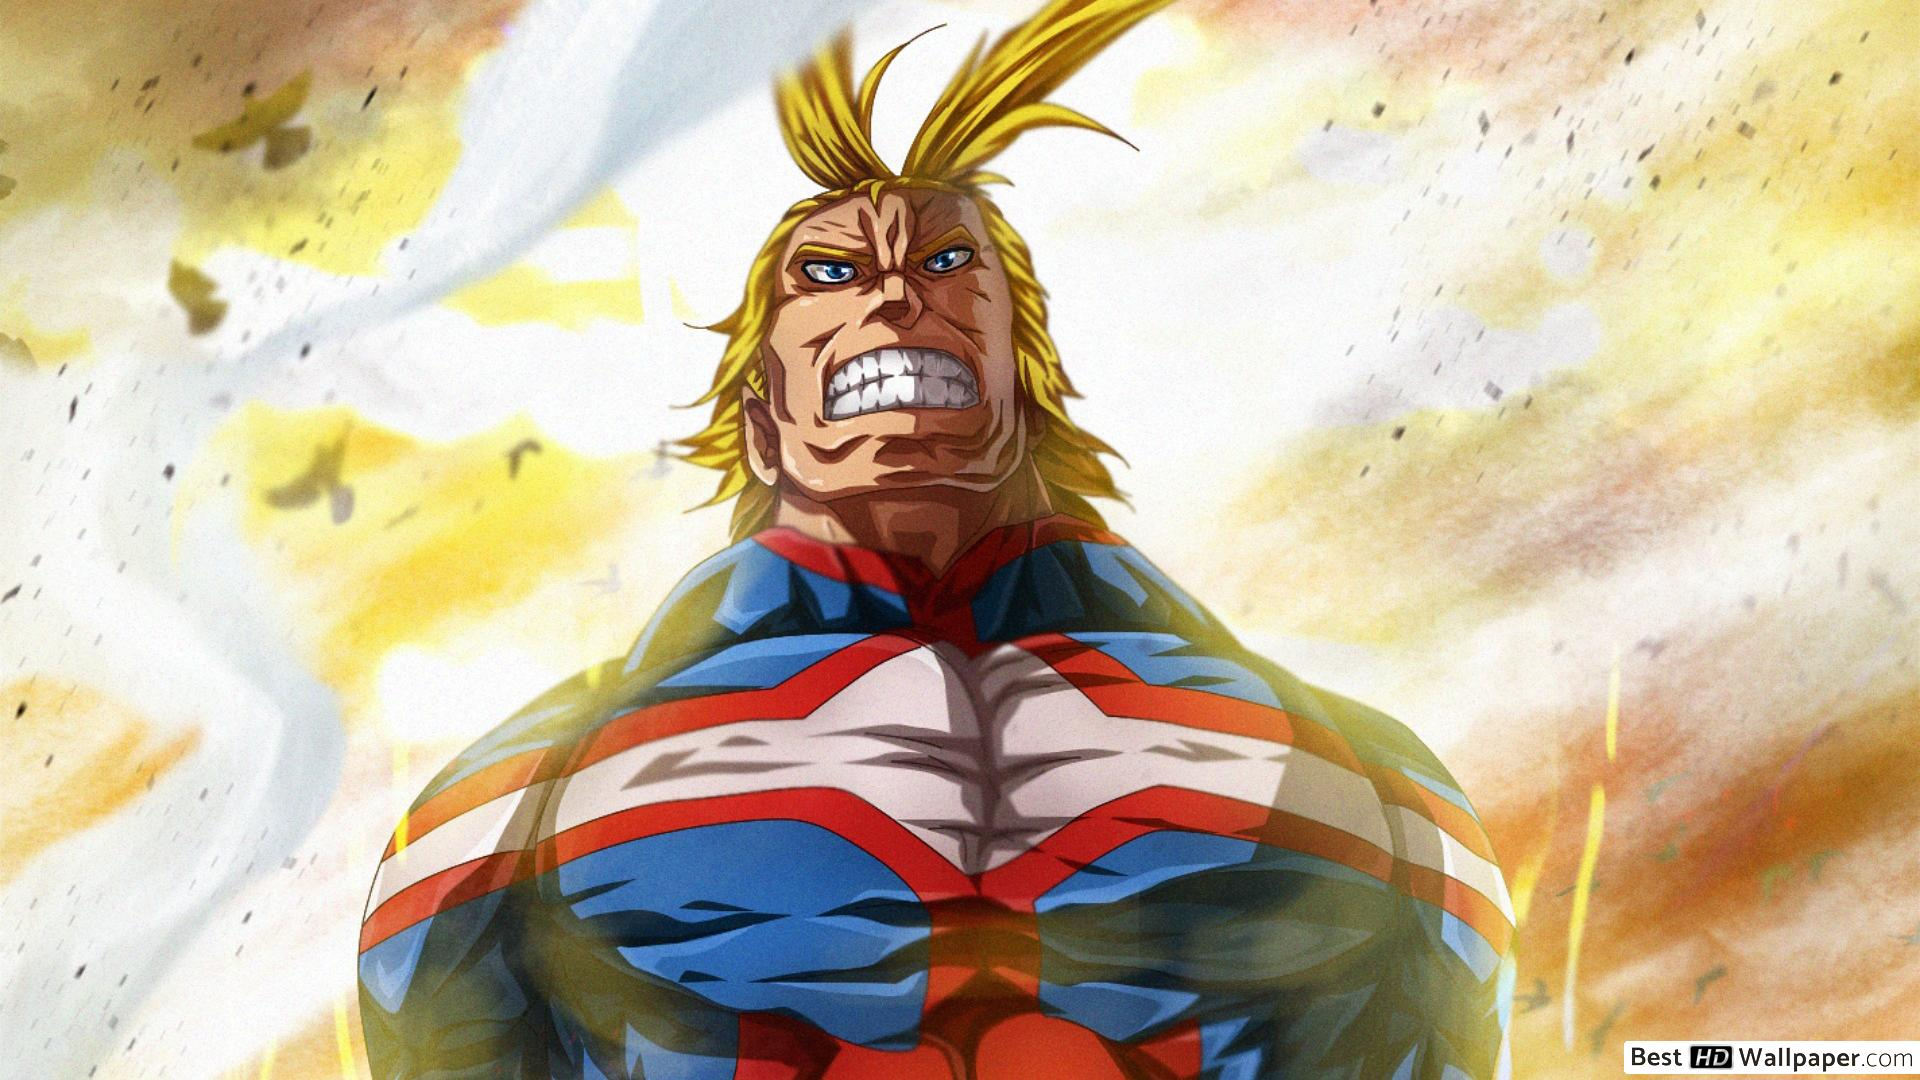 All Might Wallpaper 1920X1080 - Night wallpapers for 4k ...